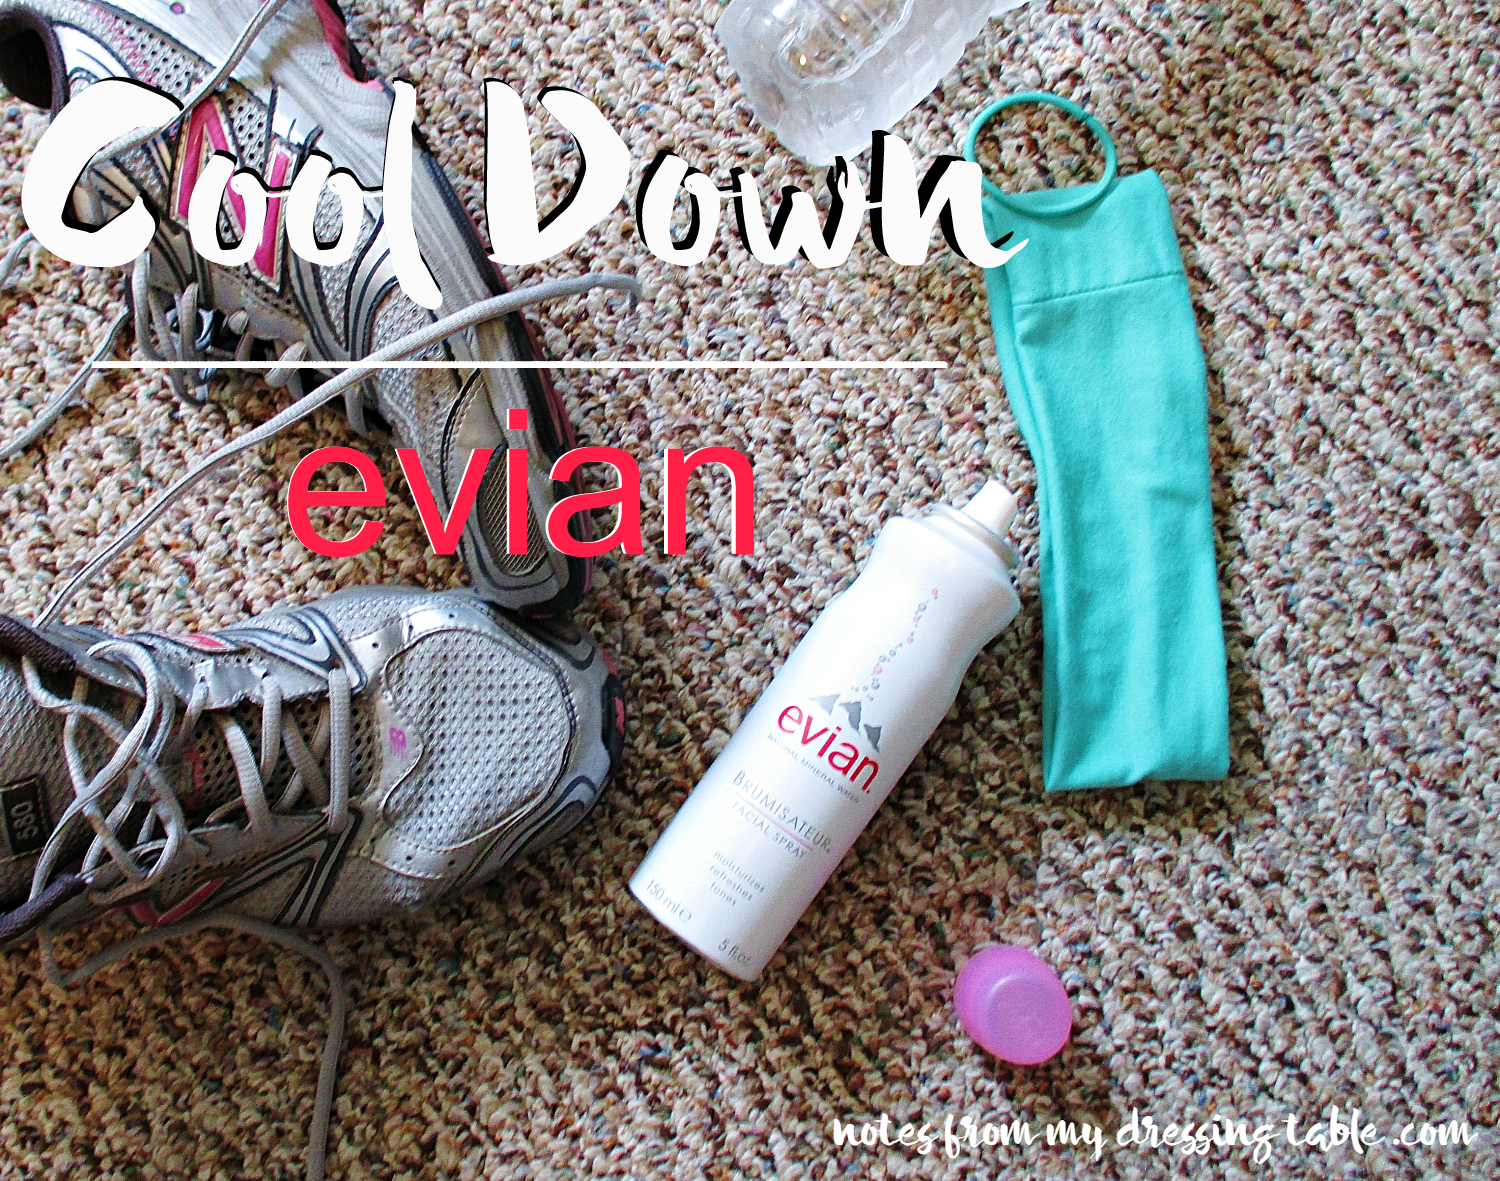 Cool Down with Evian Facial Spray notesfrommydressingtable.com